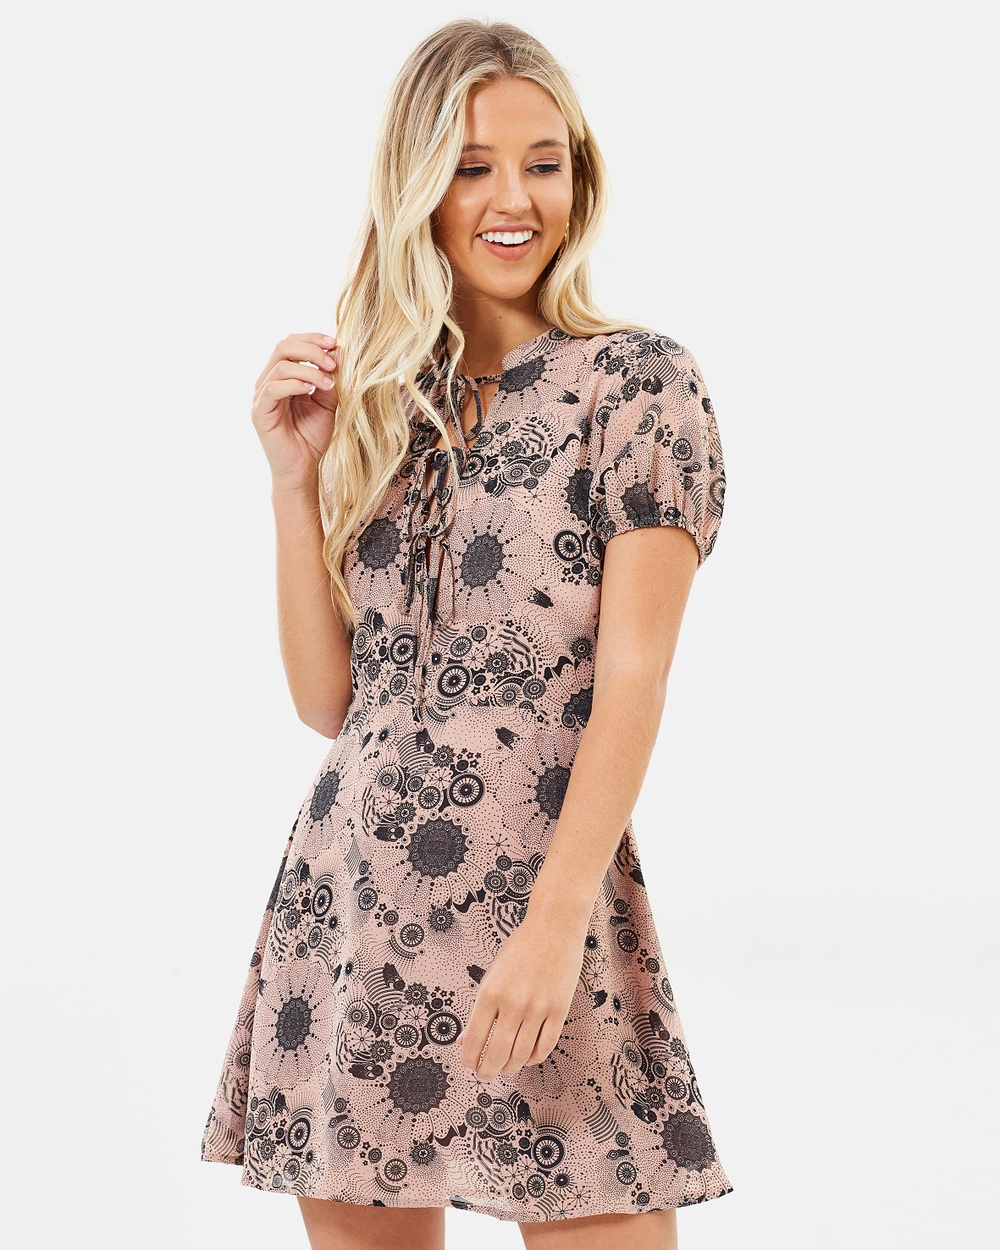 Dazie Celestial Nights Dress Printed Dresses Celestial Nights Celestial Nights Dress